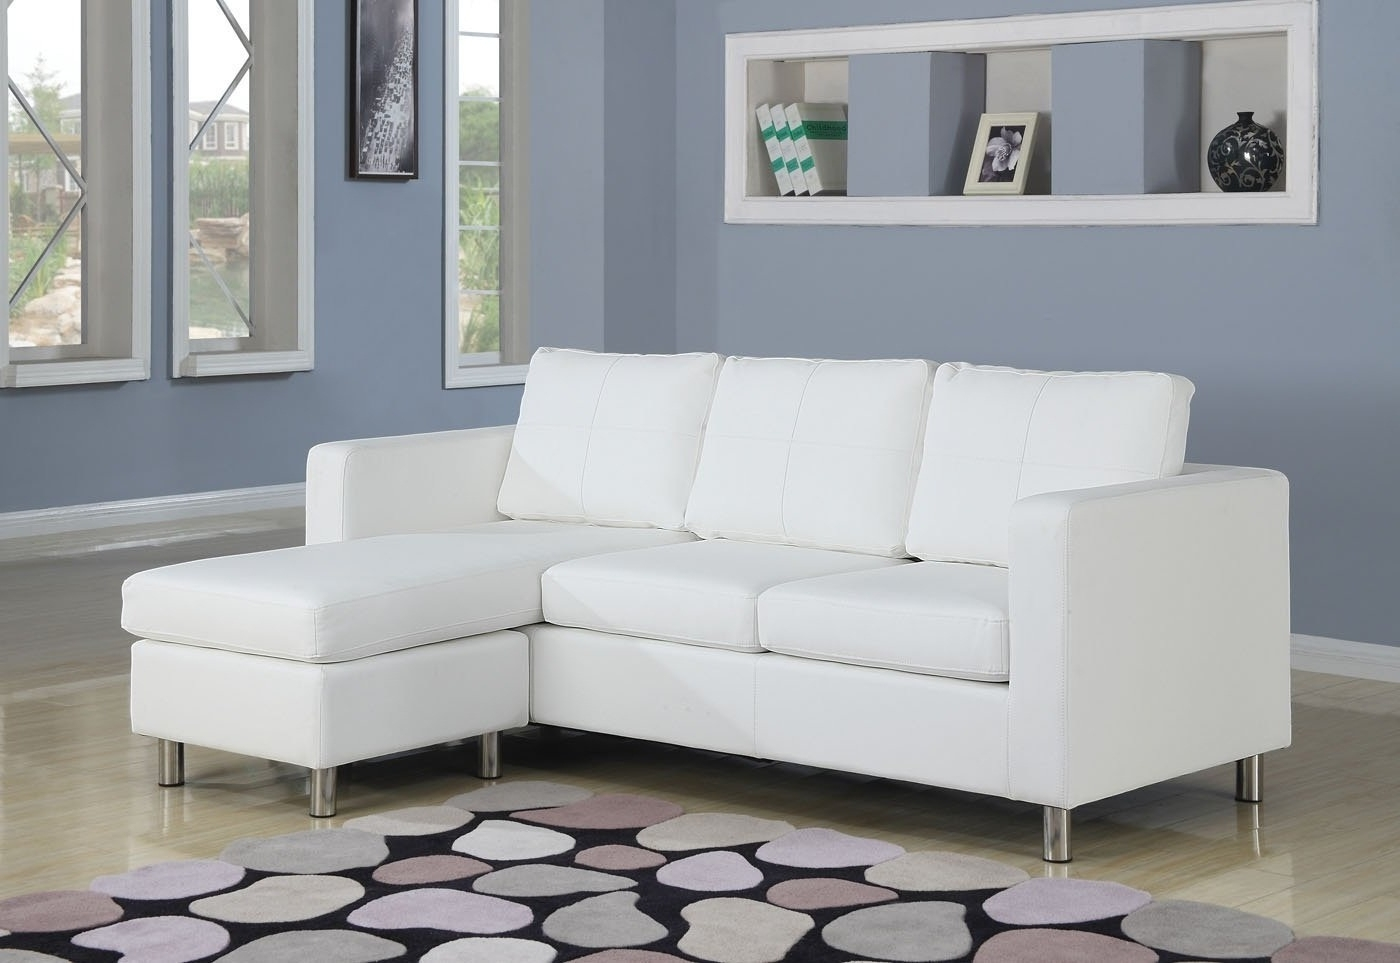 Widely Used White Sectional Sofas With Chaise Within L White Leather Sectional Sofa With Chaise And Back Also Arms On (View 15 of 15)